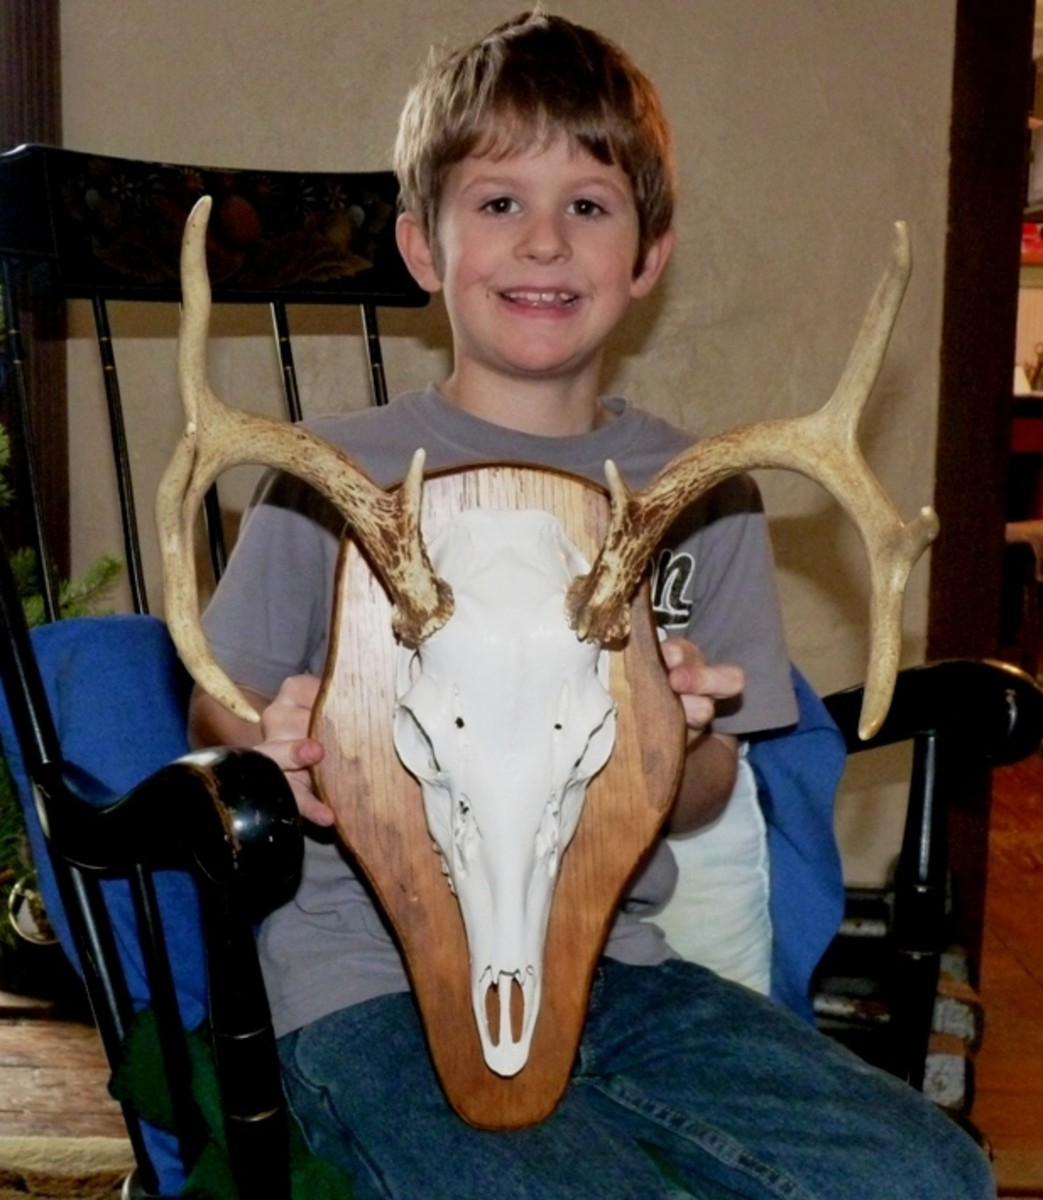 Helped the neighbor kid mount his grandpa's deer skull.